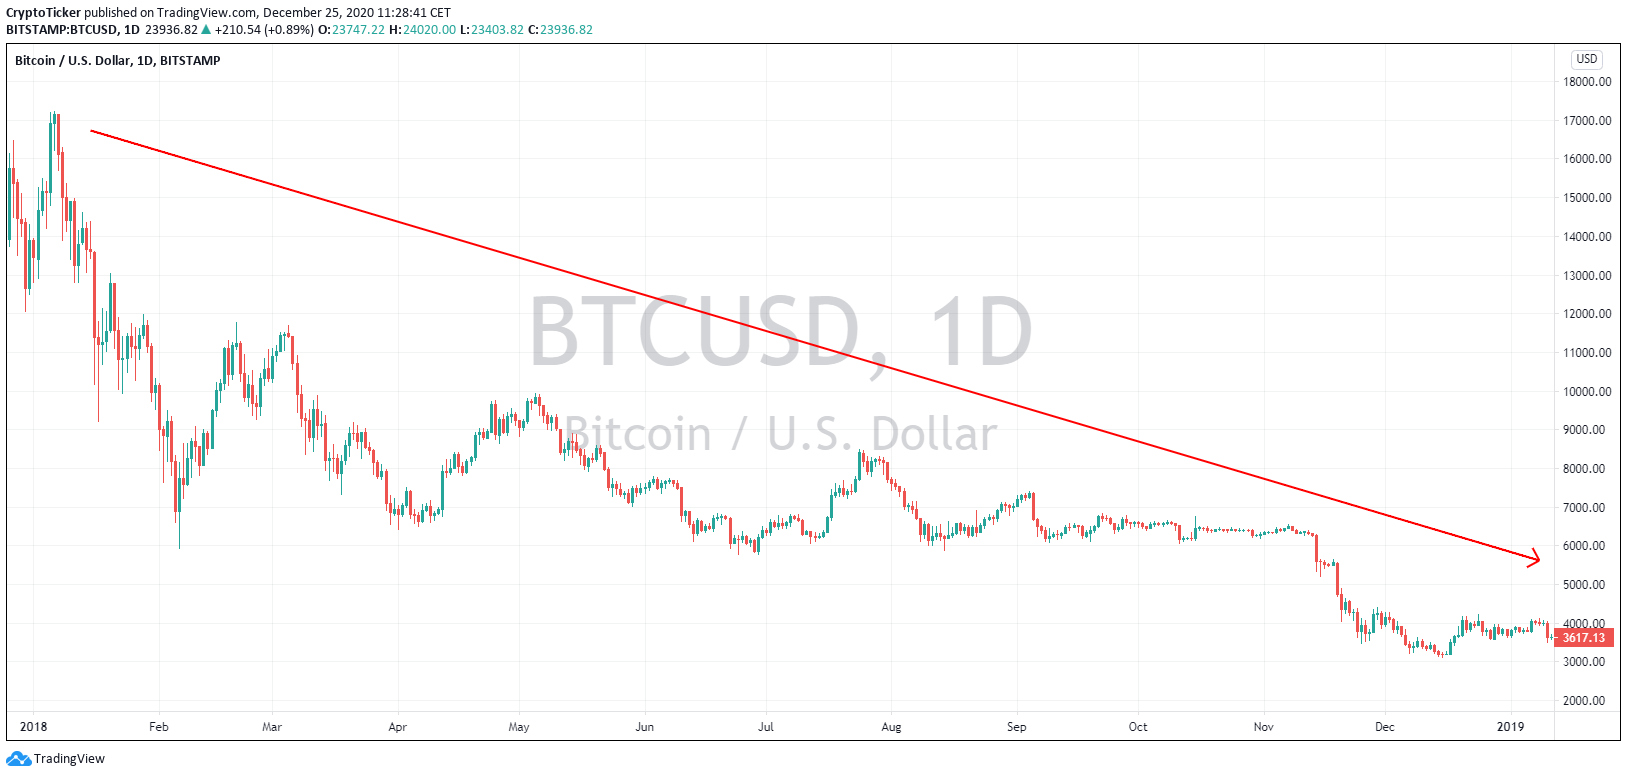 BTC/USD 1-Day chart, Flashback to the year of 2018